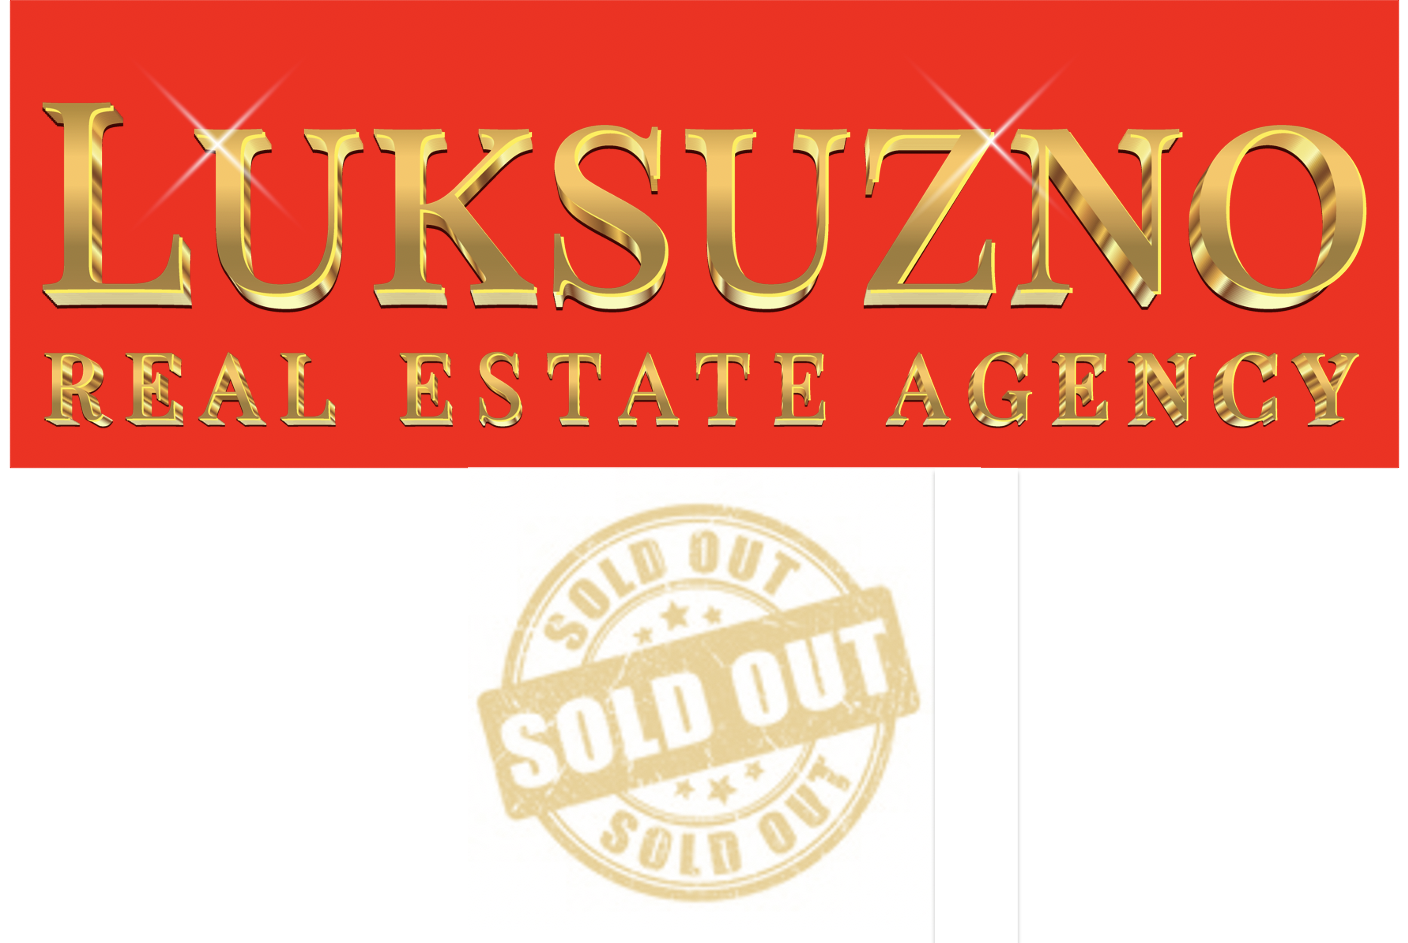 Luksuzno - luxury real estate agency Croatia, Everything we touch tourns to sold!, www.luksuzno.com